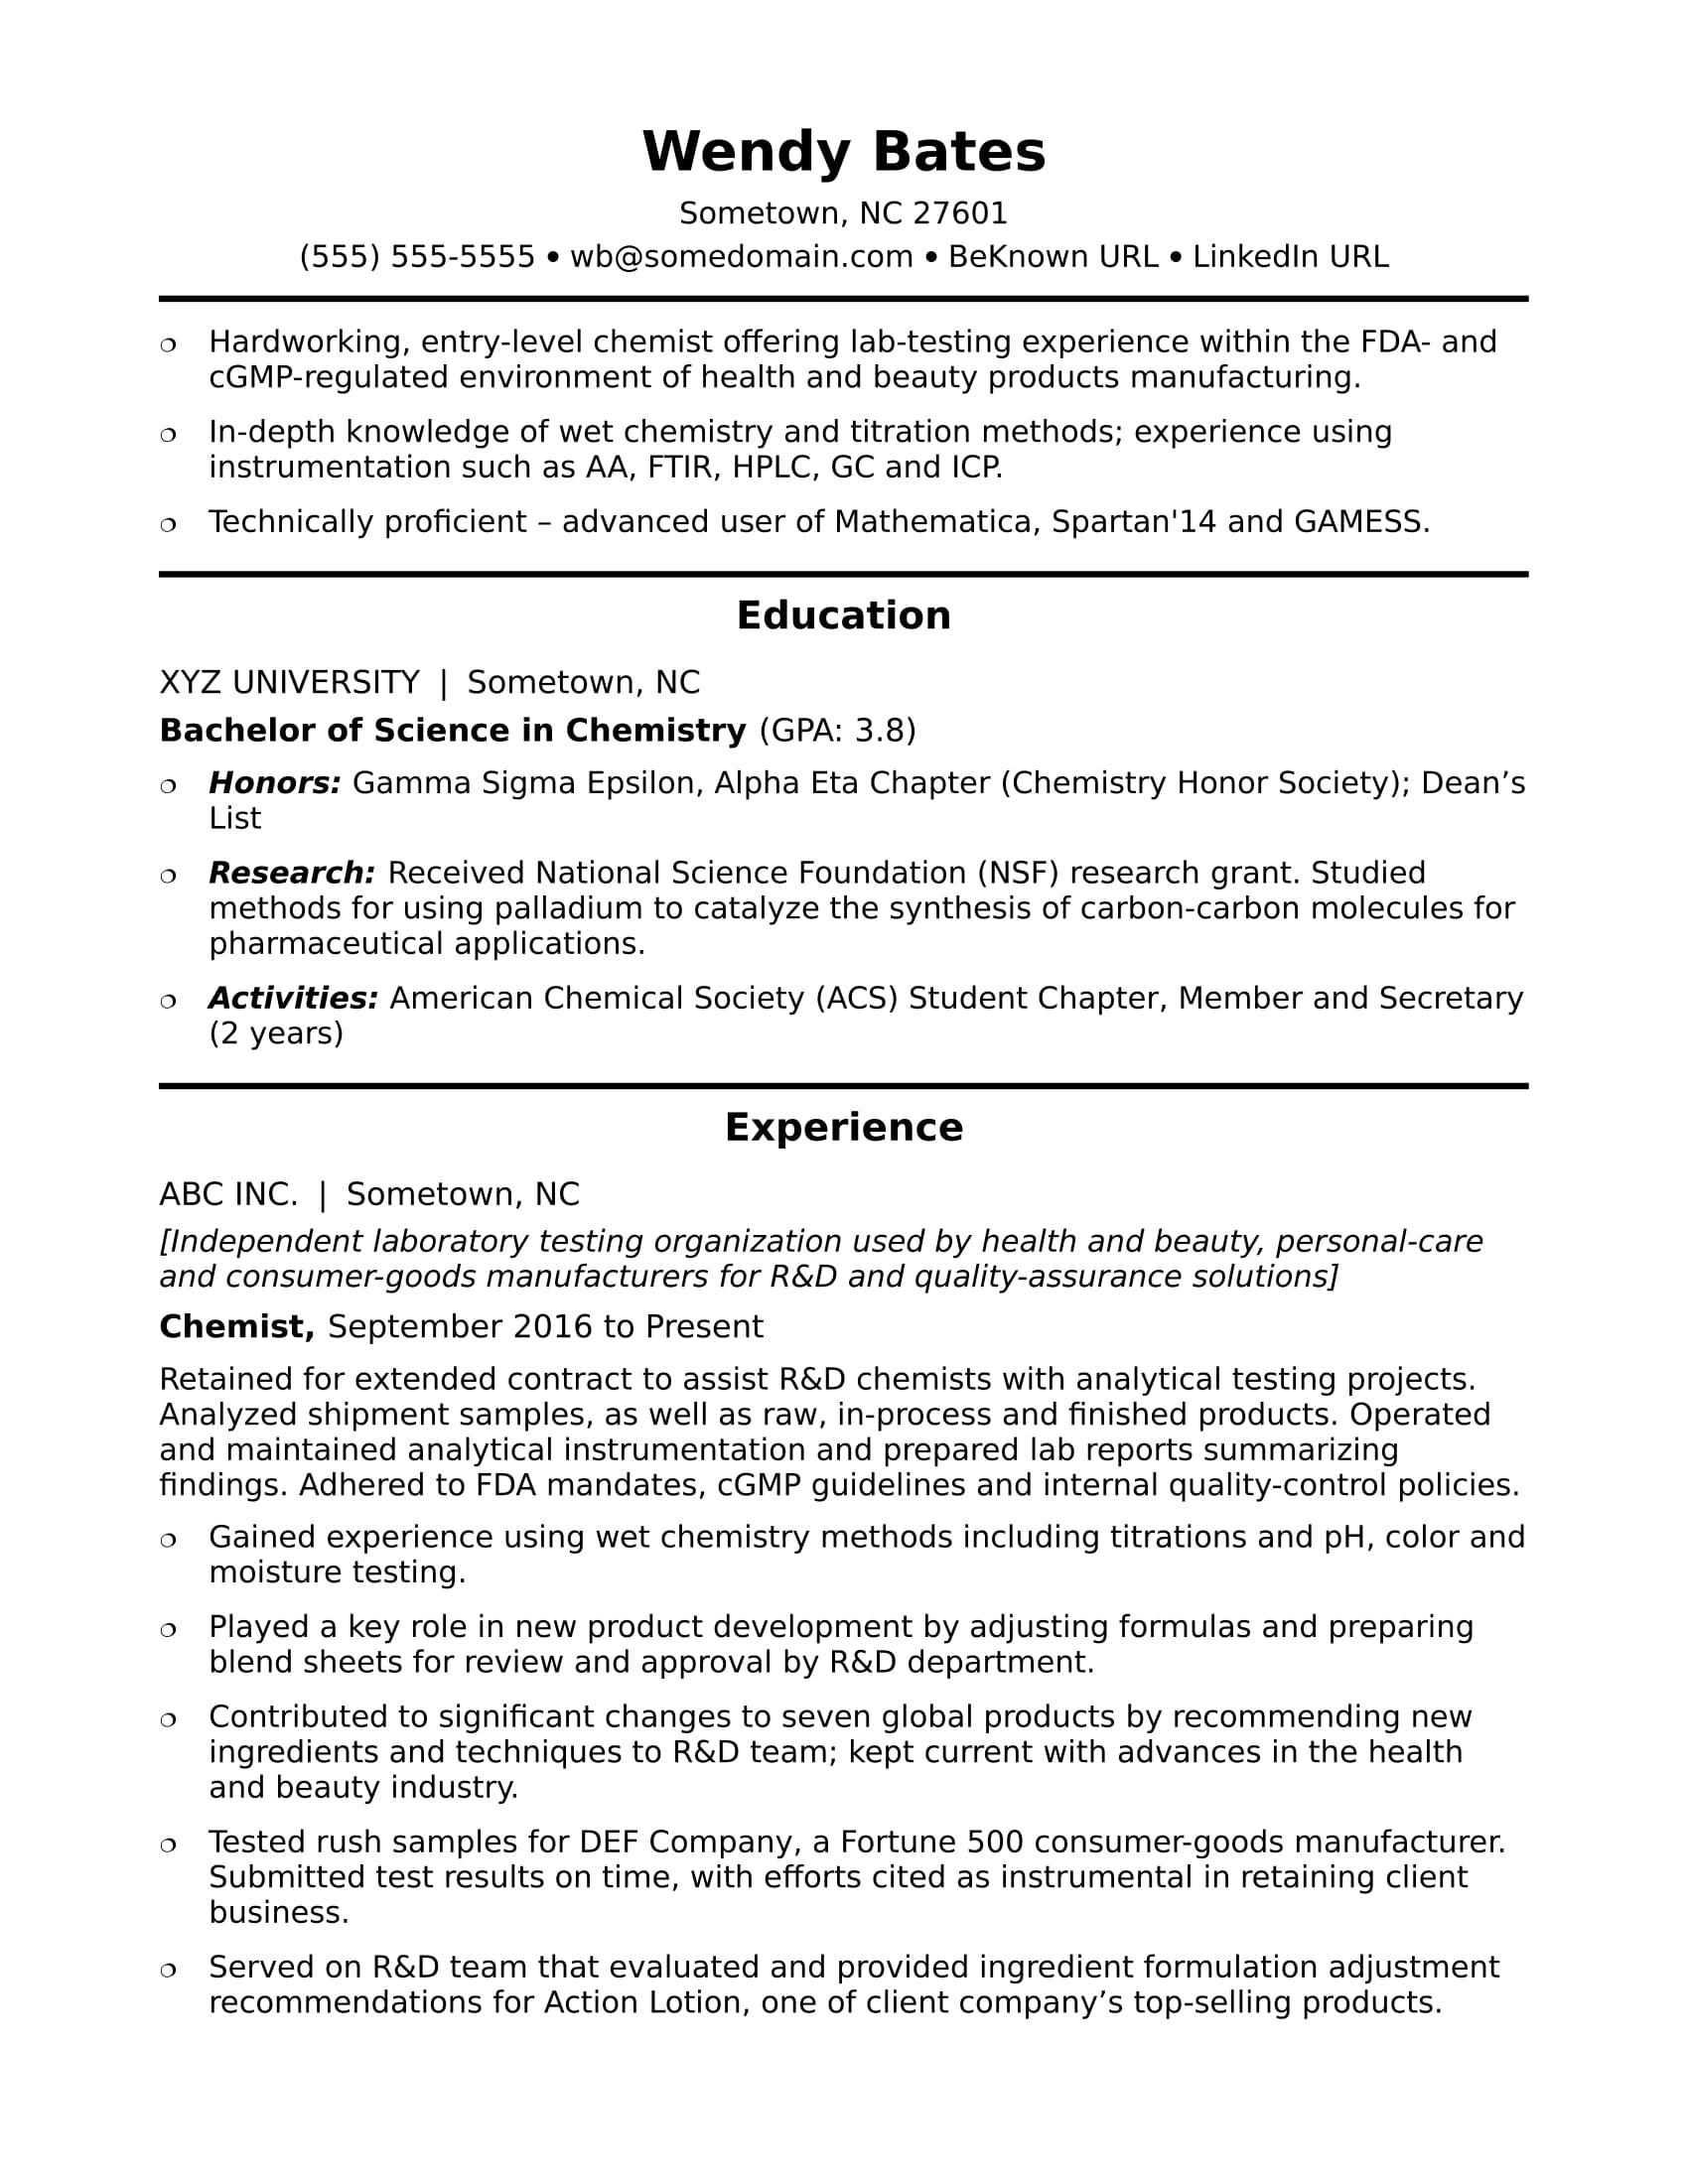 Sample Resume For An Entry Level Chemist  Sample Entry Level Resume